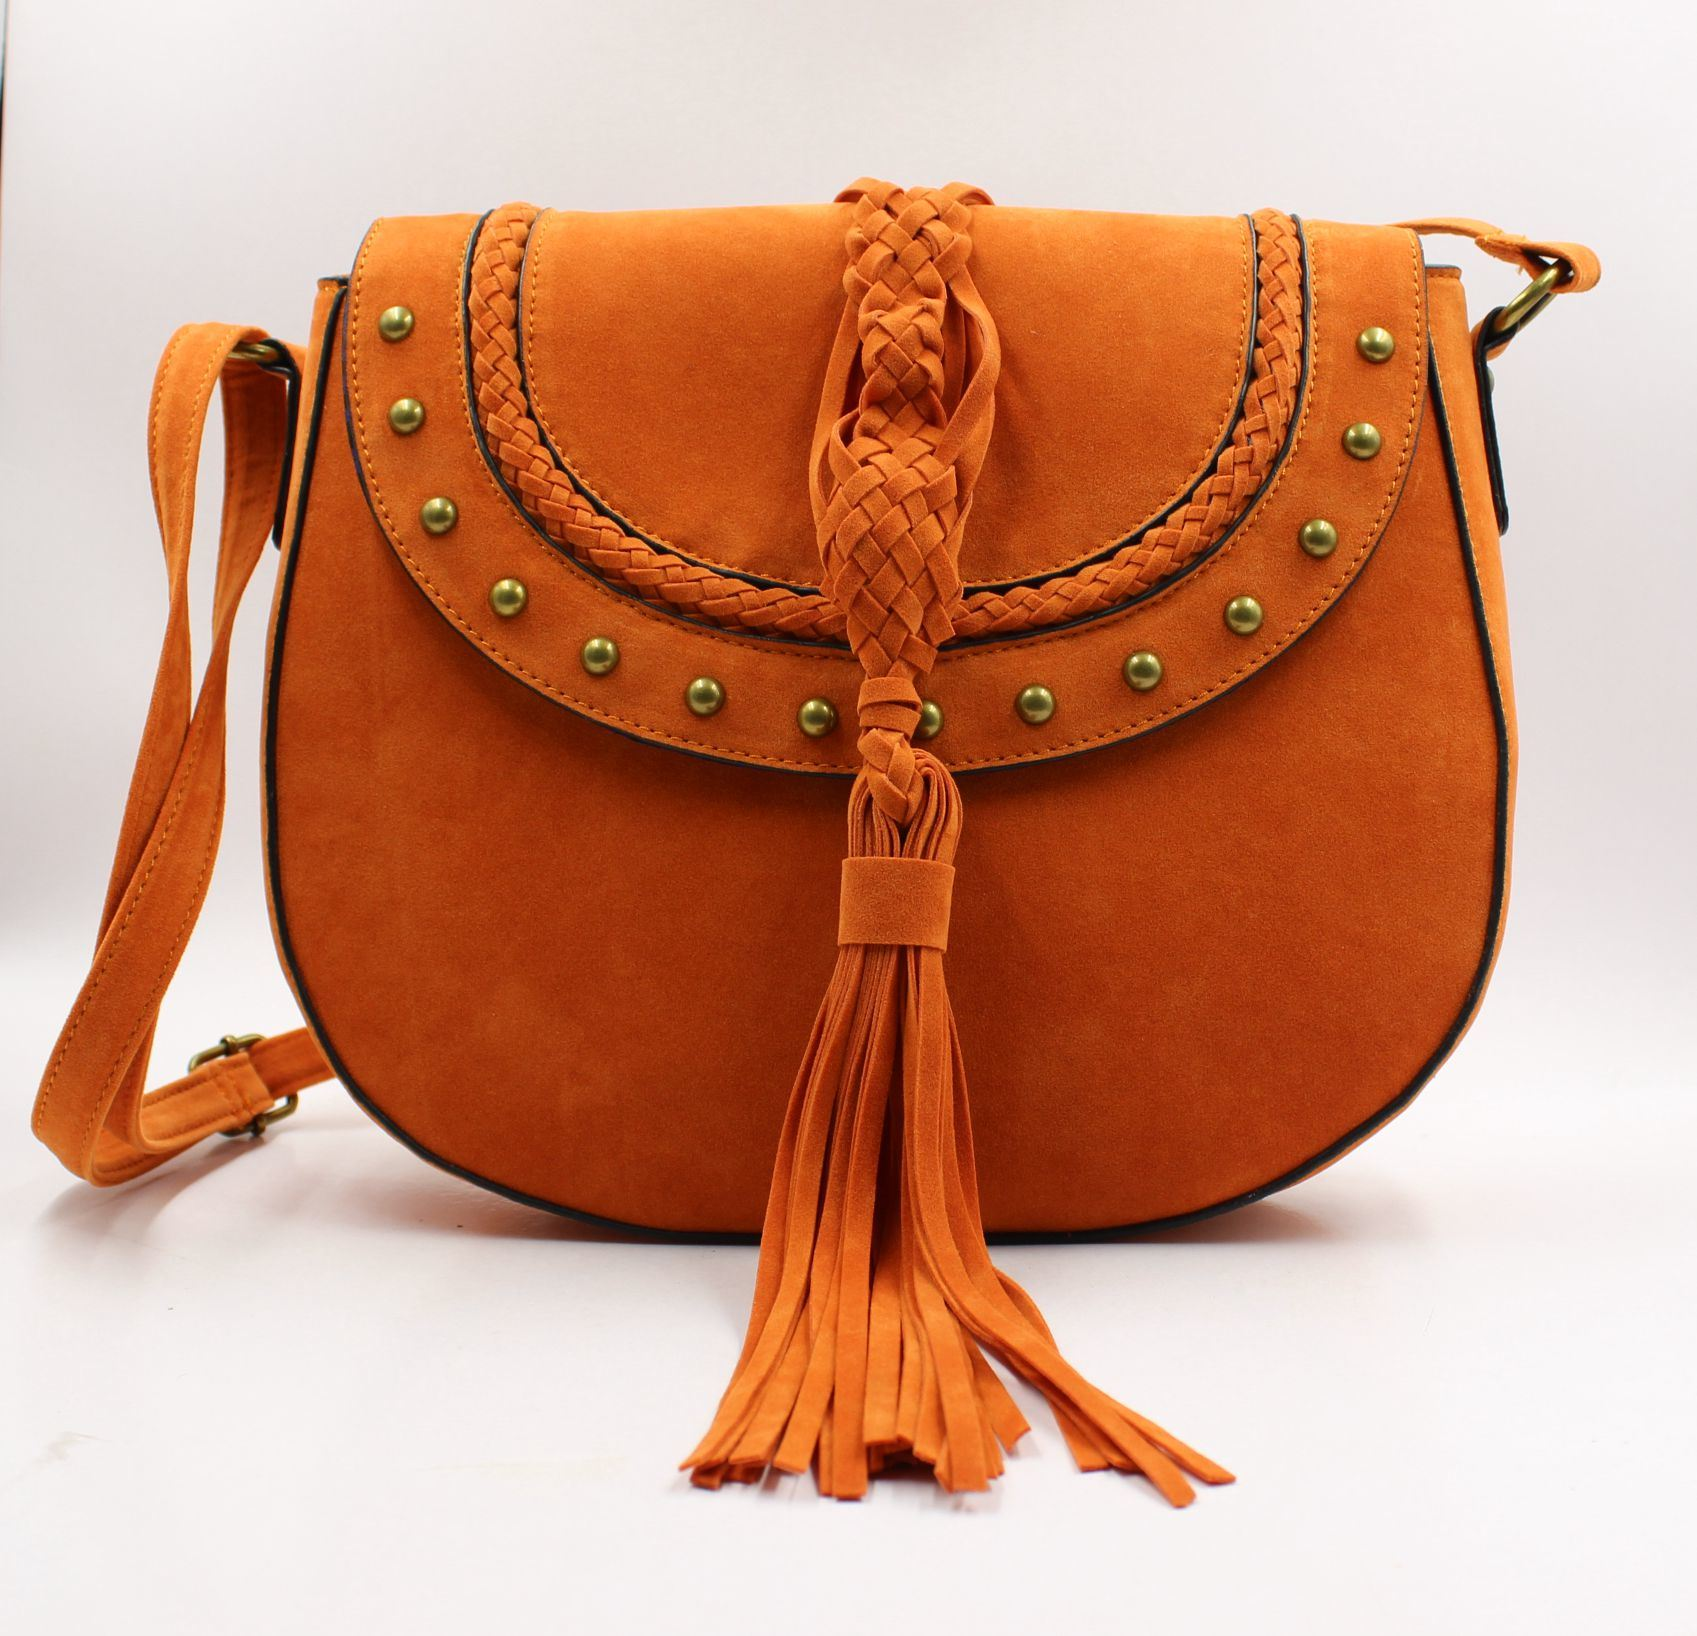 Good Good Lady Handbags Handbags for Women Handbags on Sale